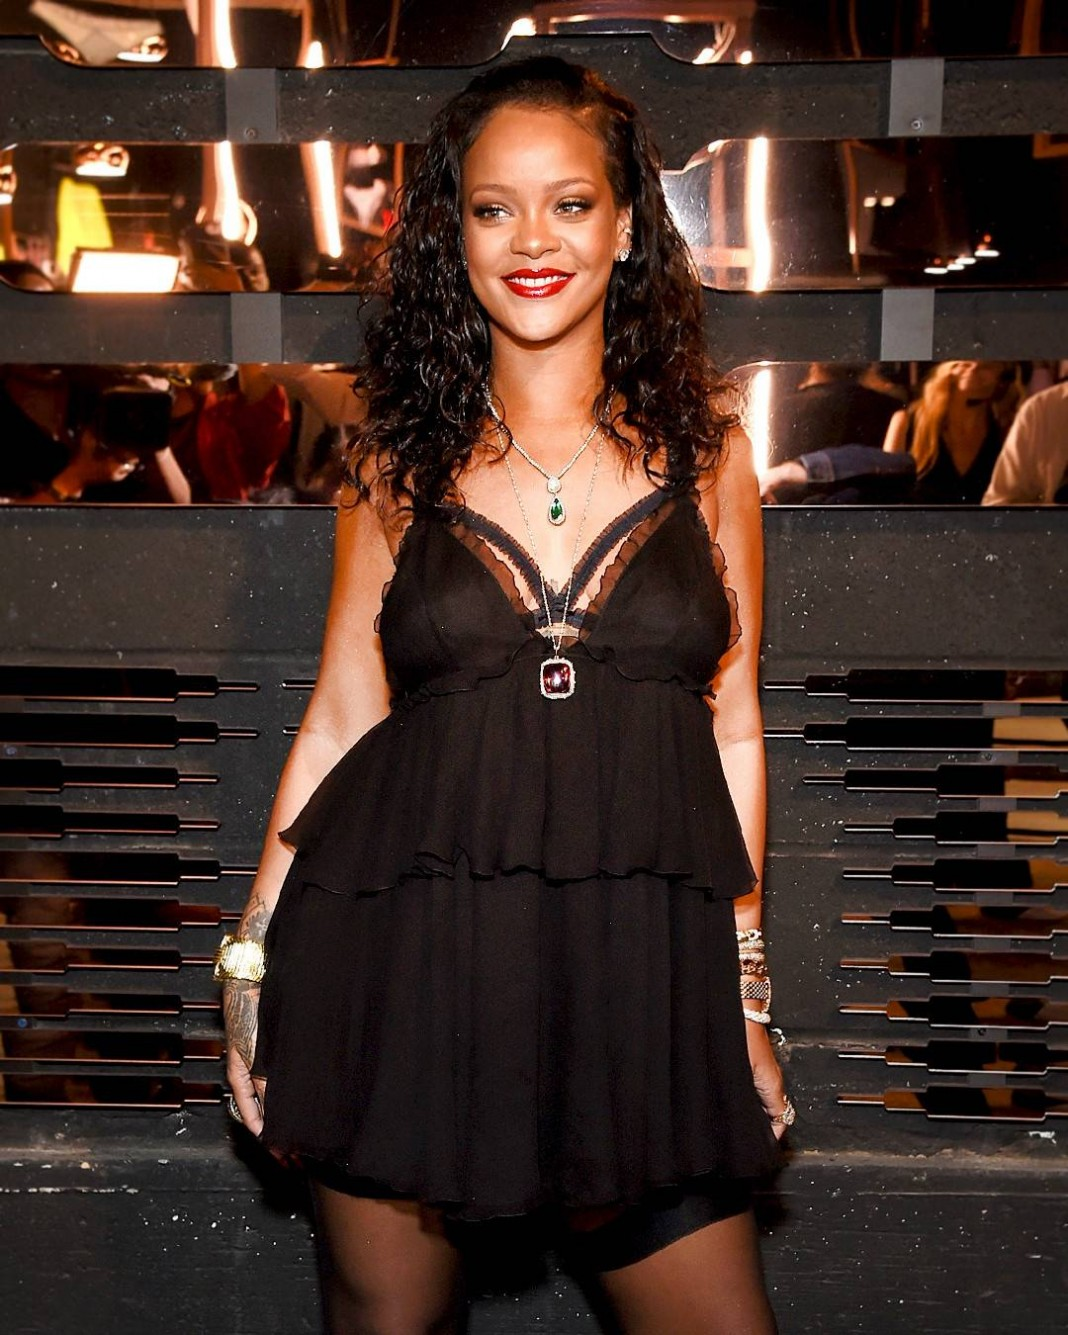 Rihanna Shares Her Tips on How to Feel Confident in Lingerie